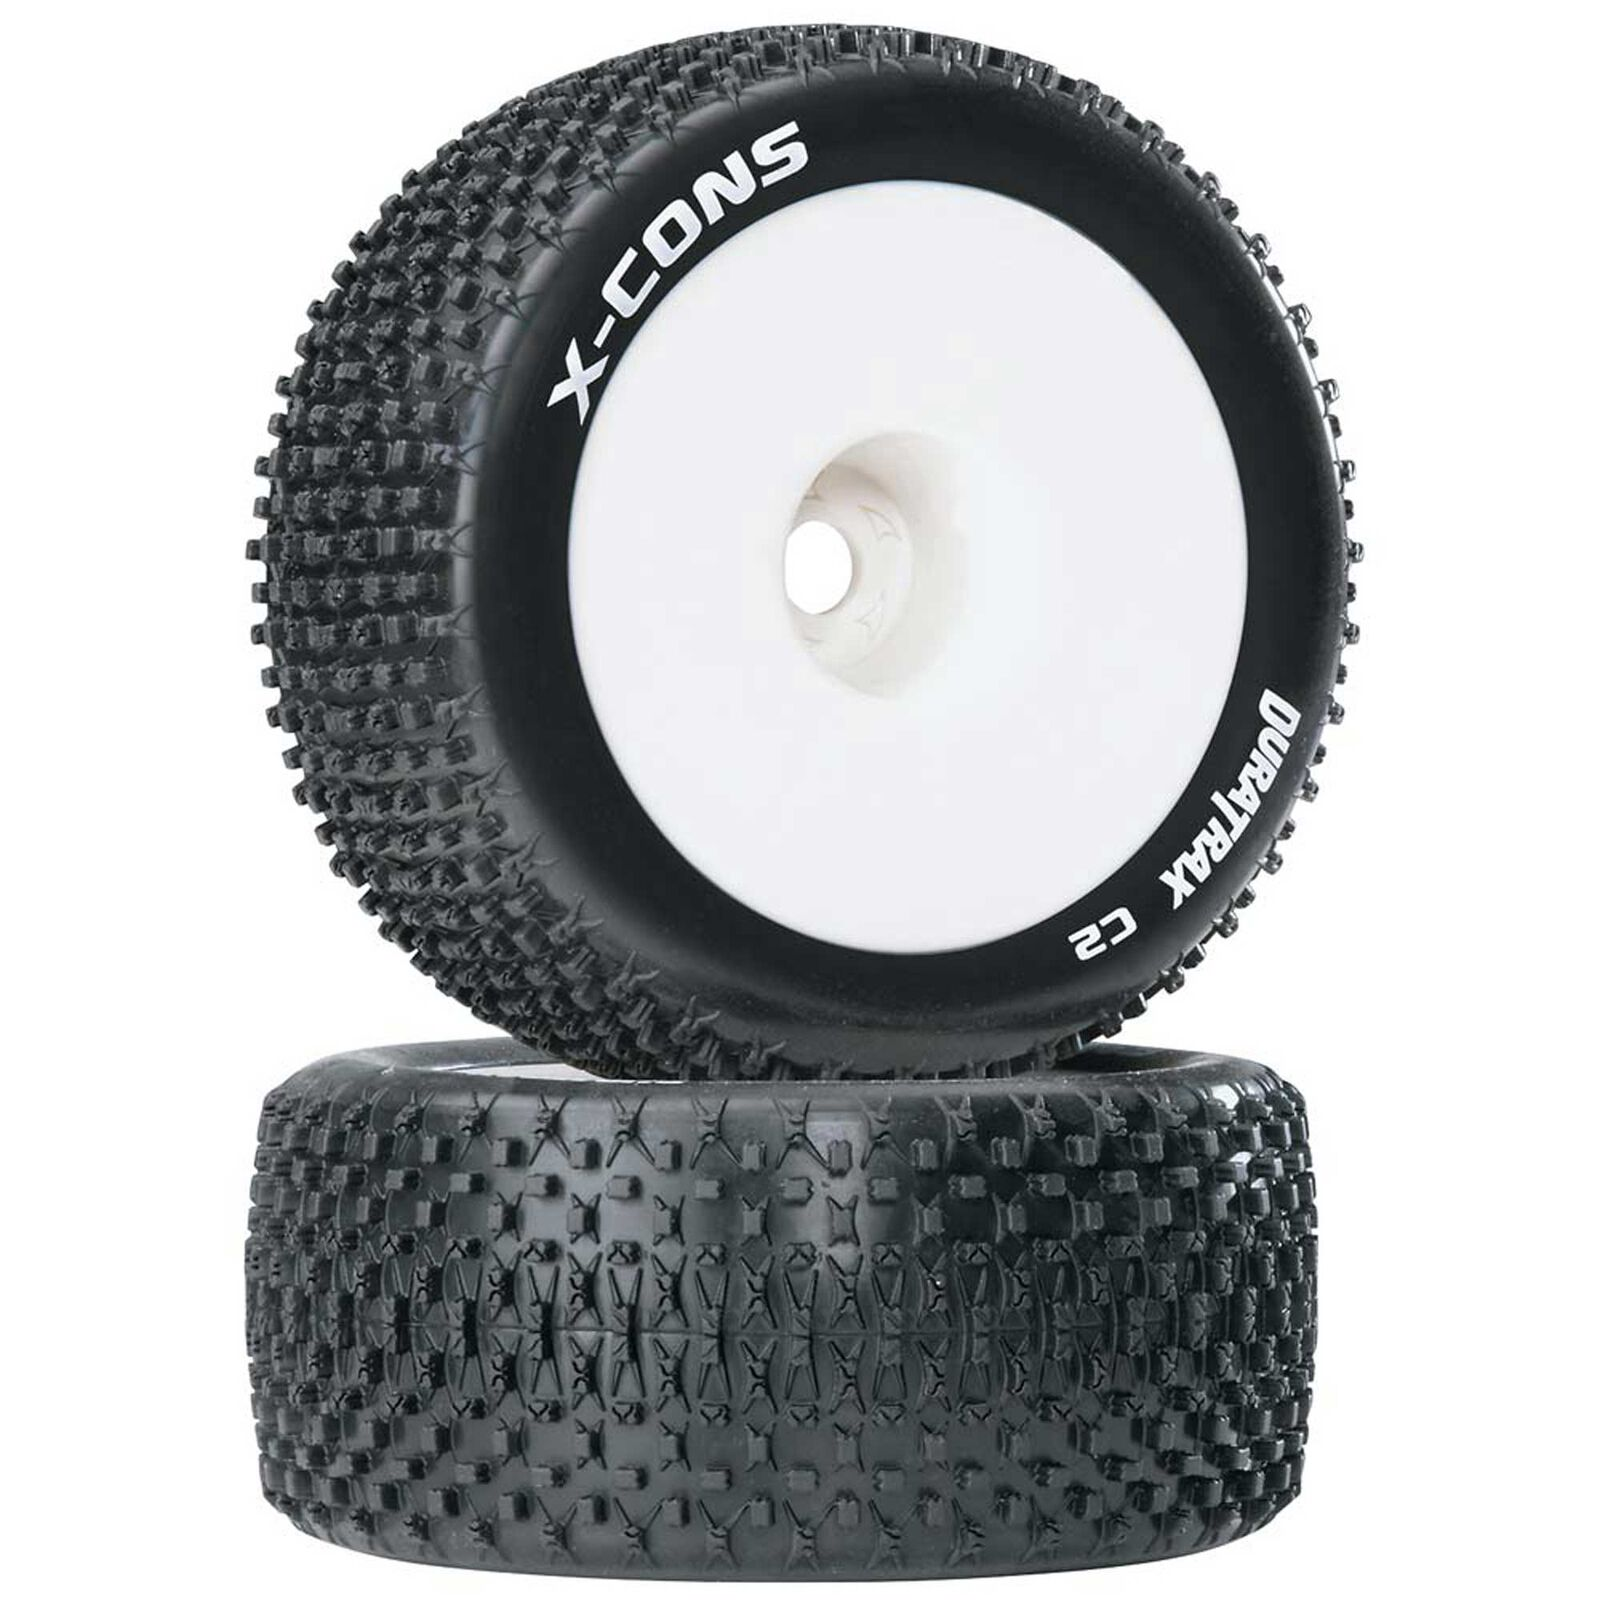 """X-Cons 1/8 Mounted 1/2"""" Offset C2 Truggy Tires (2)"""